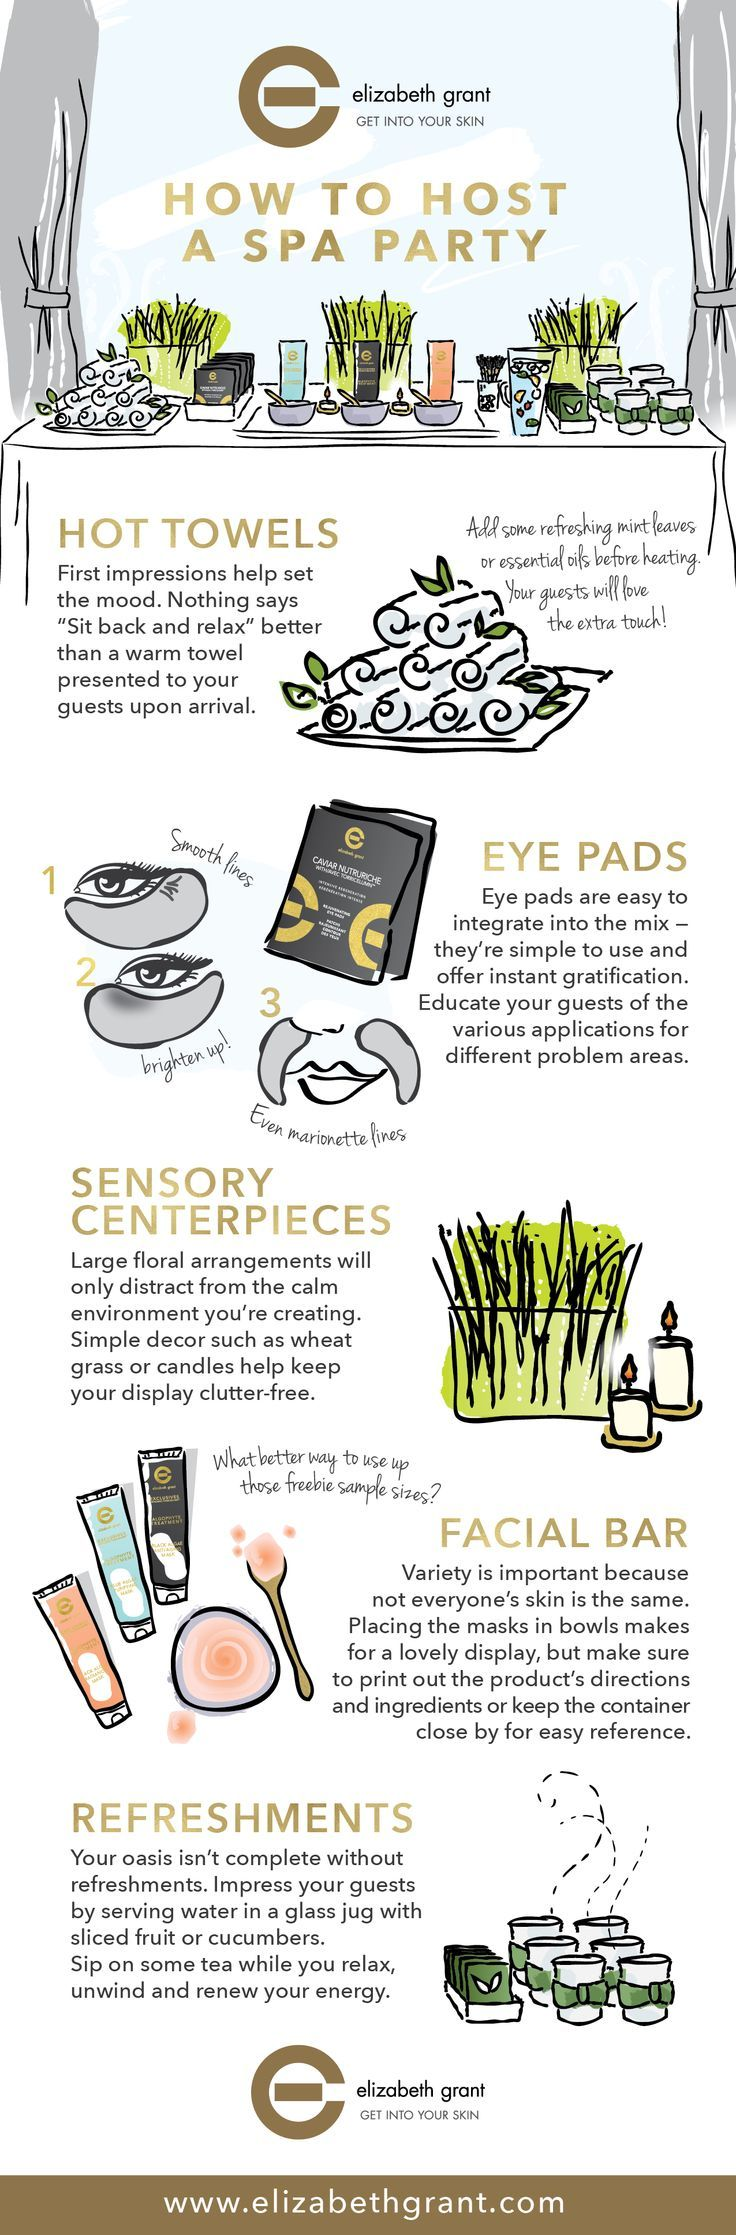 8 best Spa day images on Pinterest | At home spa, Self care and Soaps